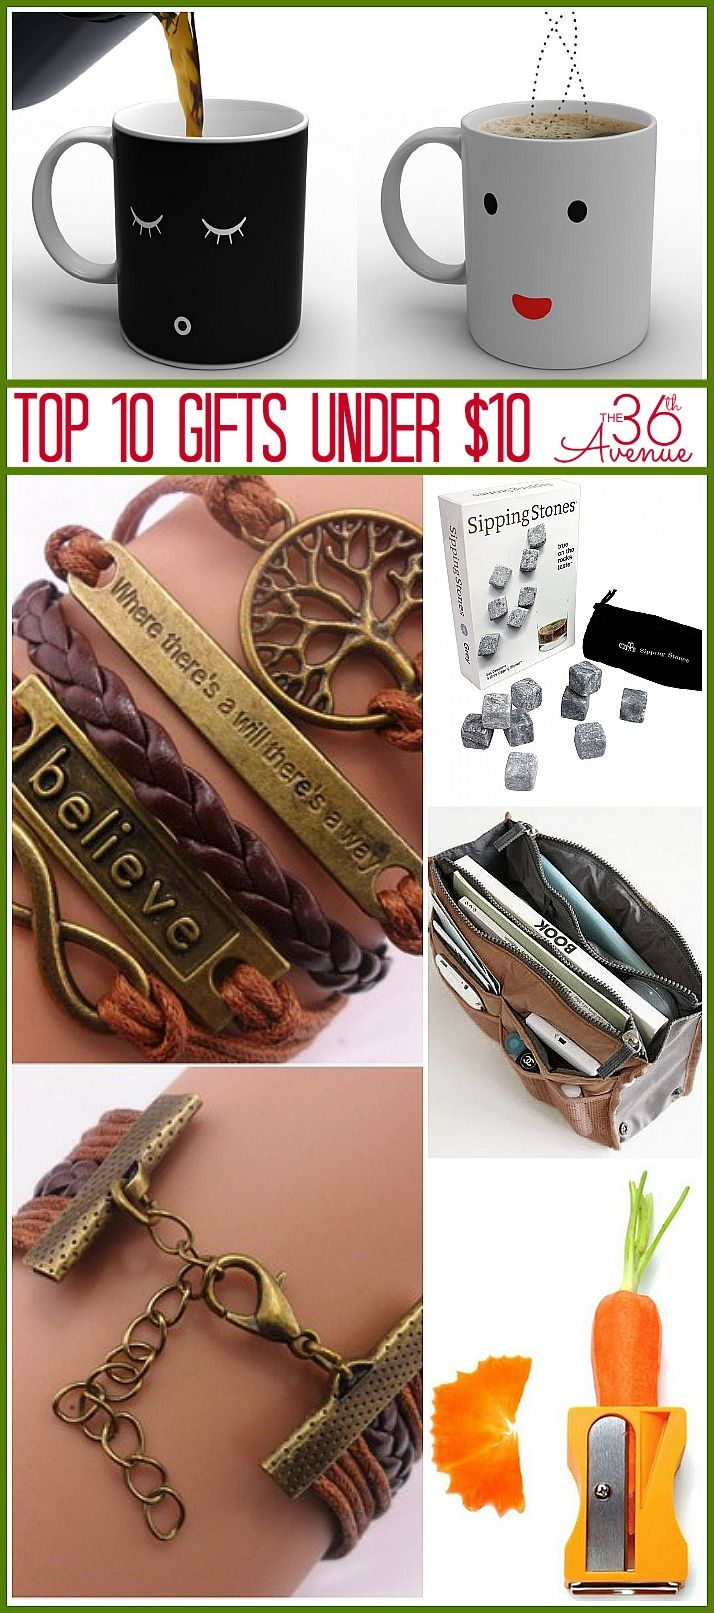 Top 10 GIFTS under $10 ...MUST SEE!